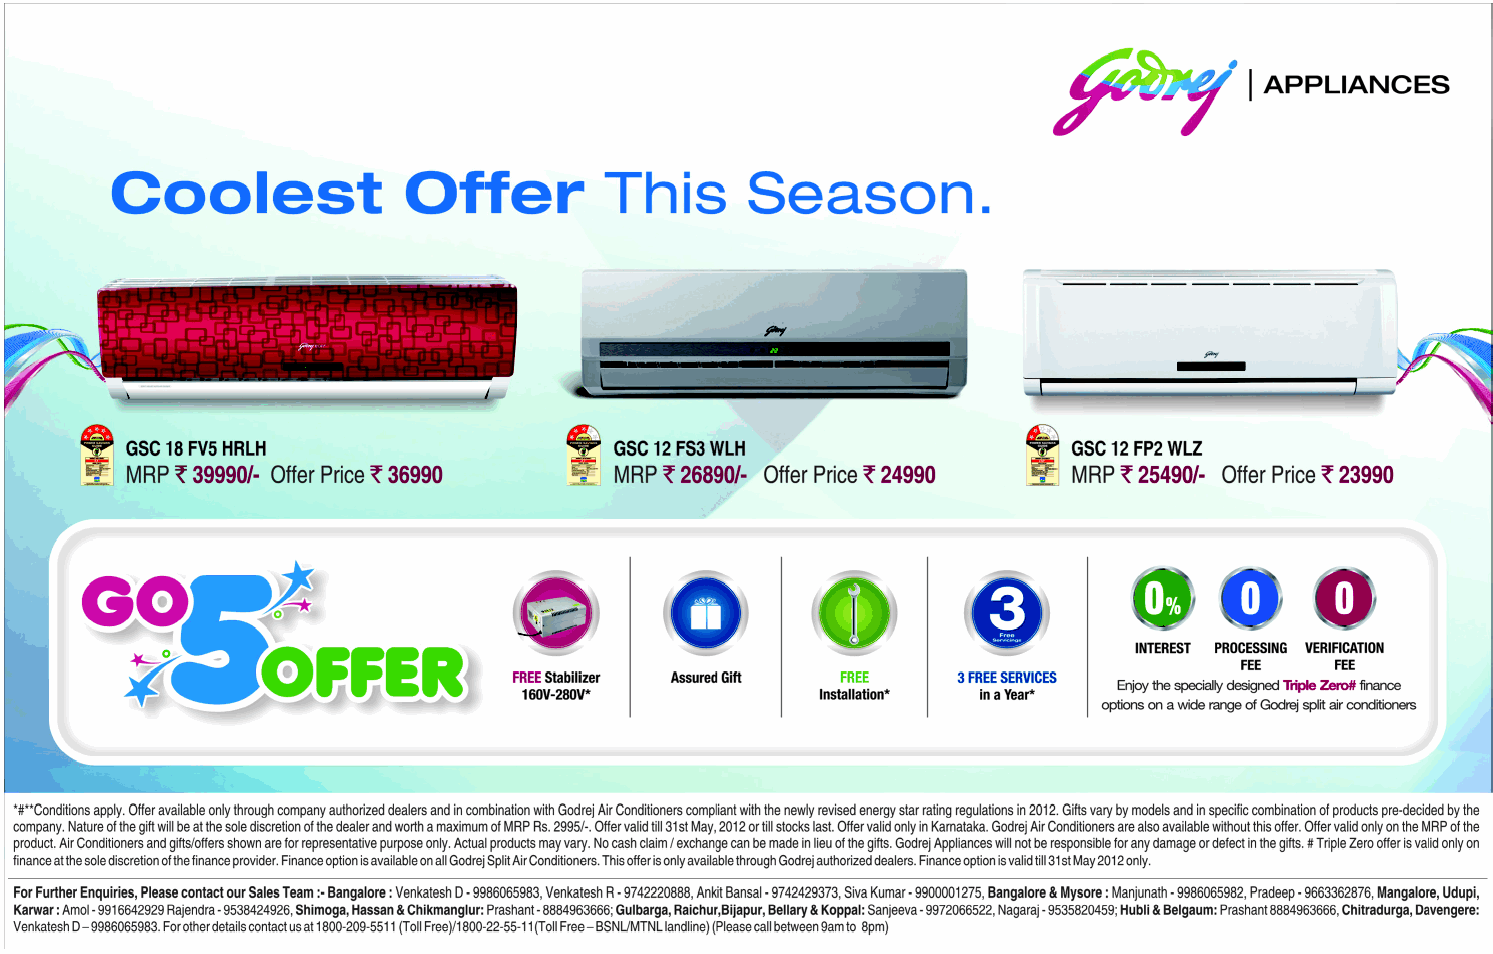 godrej air conditioners - go 5 offers / bangalore | saleraja